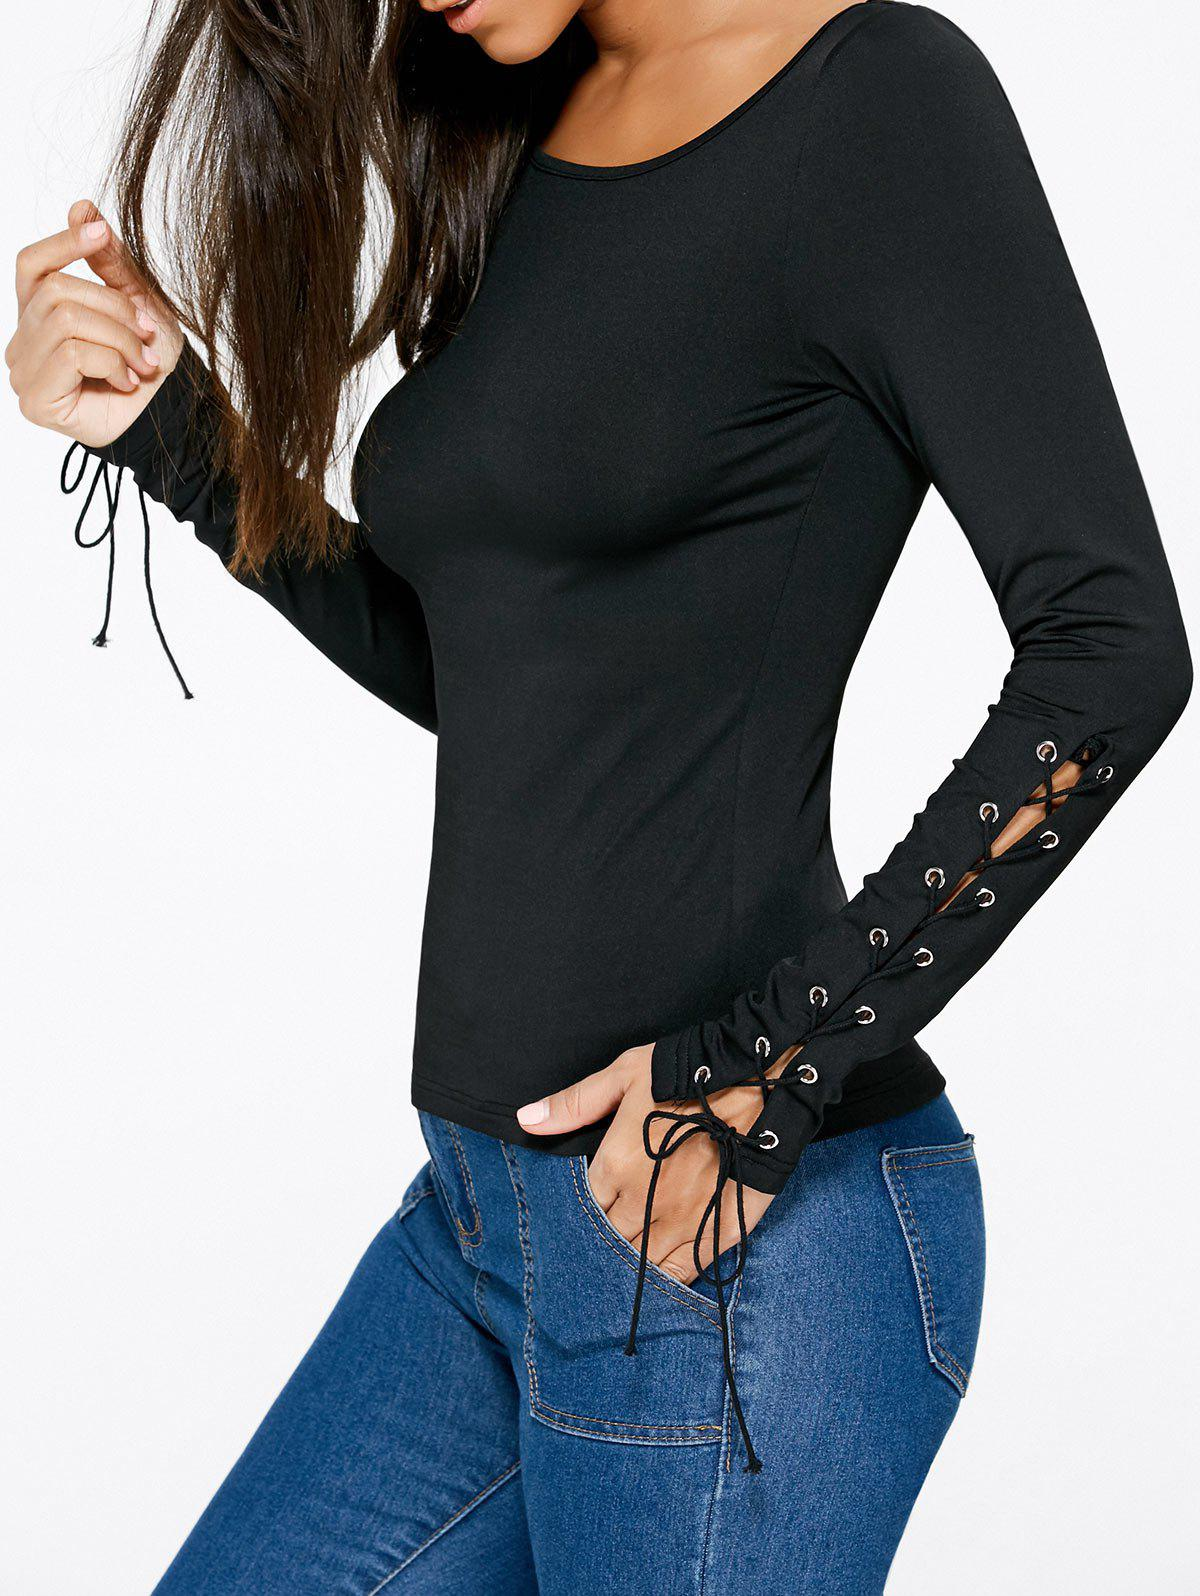 Lace Up Fitted Top - BLACK 2XL